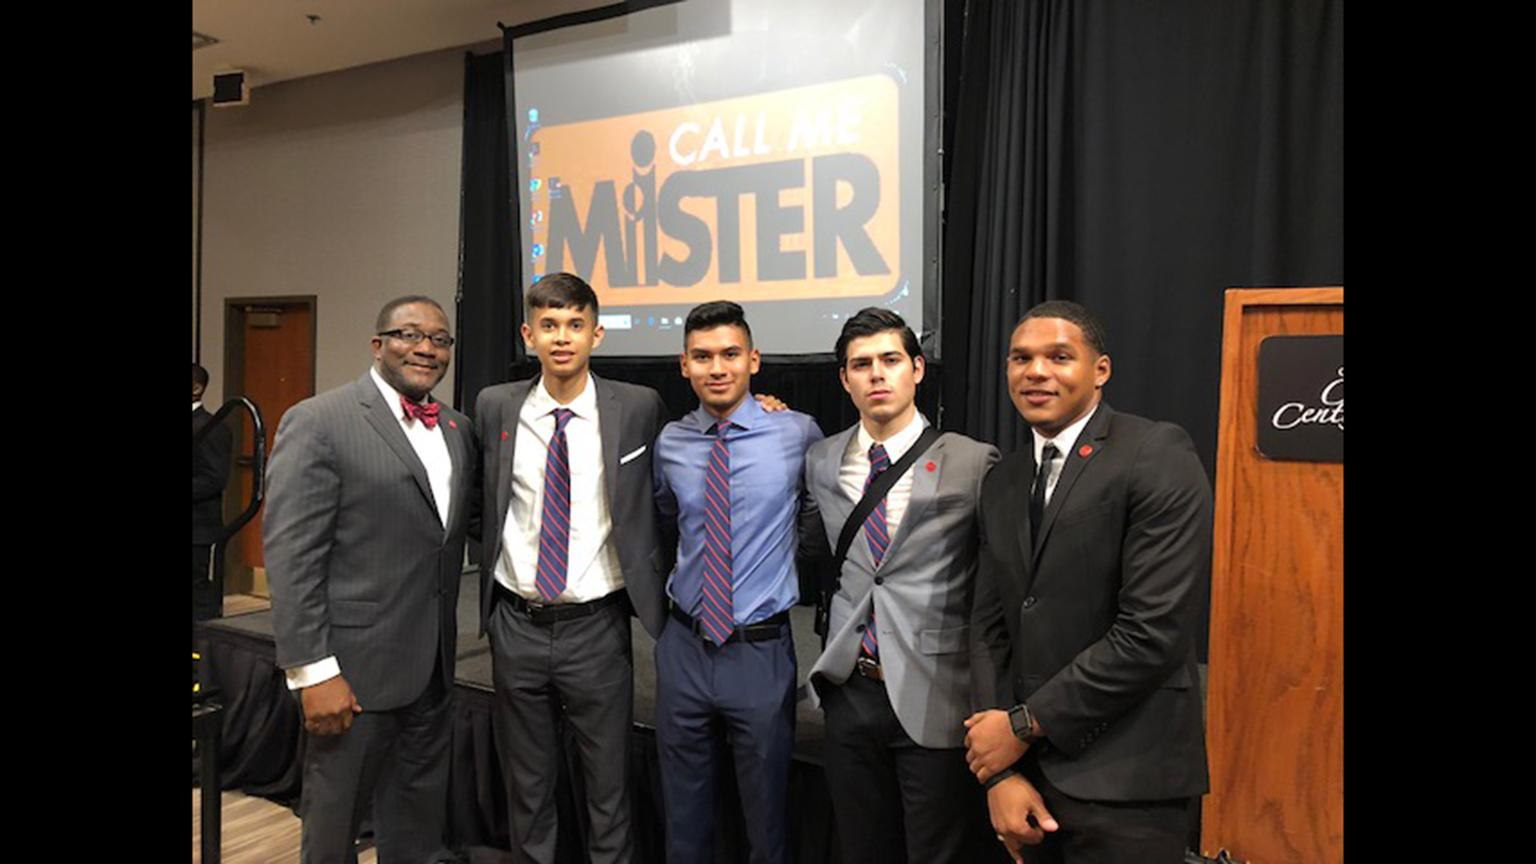 Six students will participate in UIC's Call Me MISTER program, which aims to get more male teachers of color into classrooms. From left: Alfred Tatum, Armando Rivera, Juan Hernandez, Jesus Flores and Juwaun Williams. (Credit: UIC Photo)